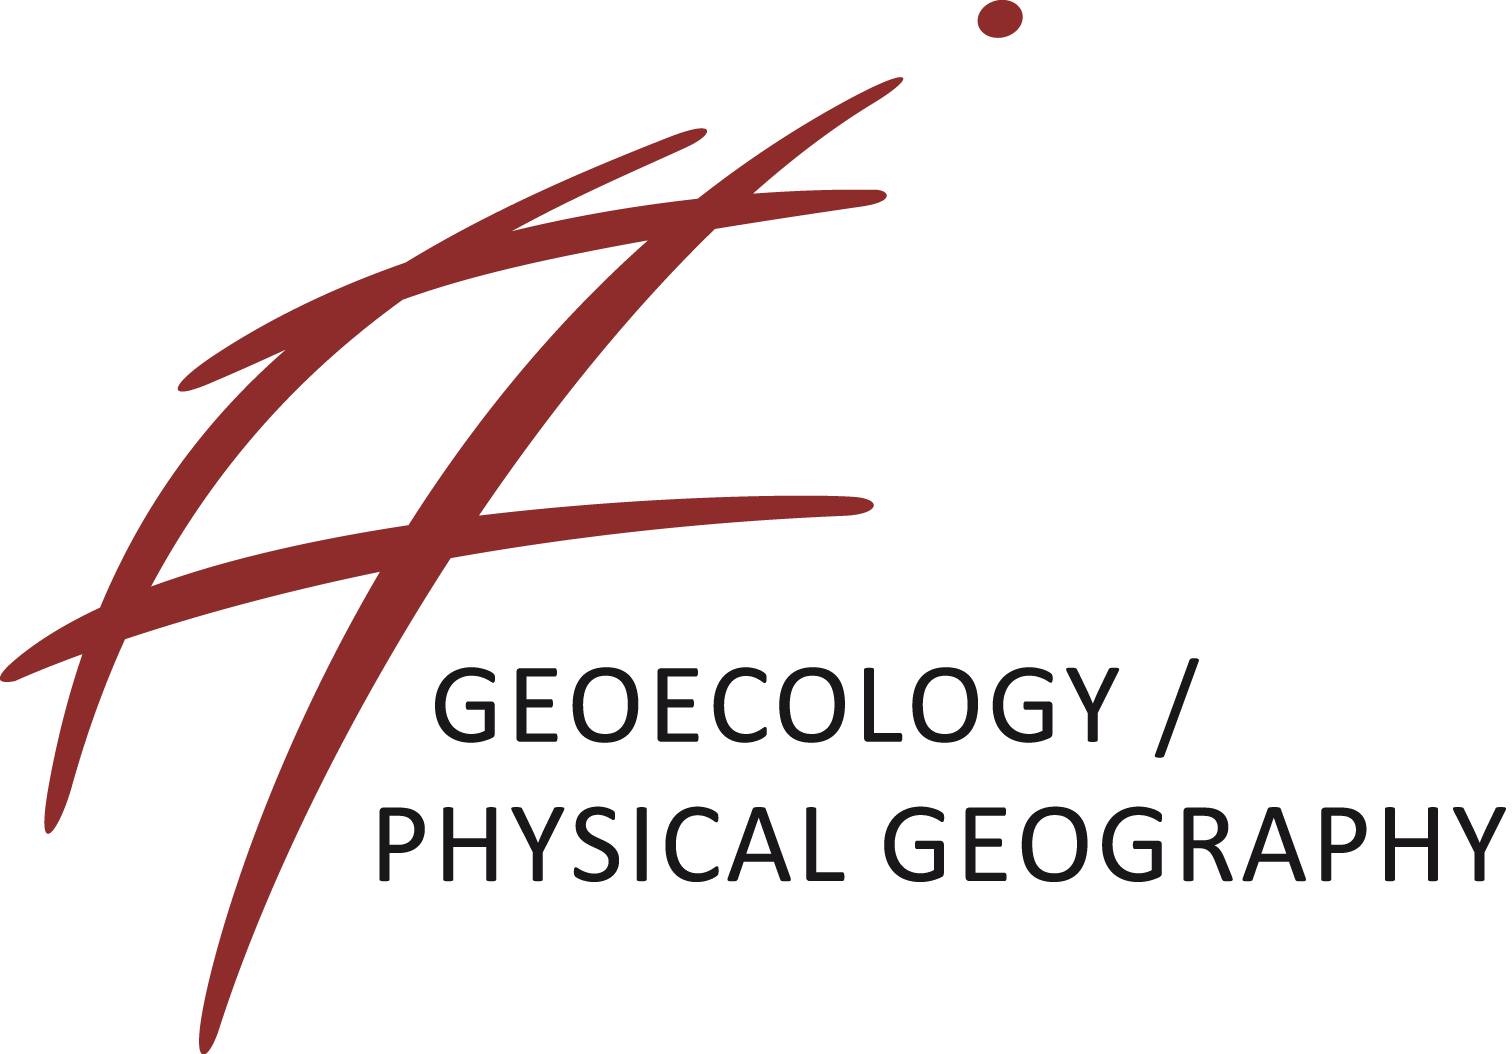 Geoecology & Physical Geography